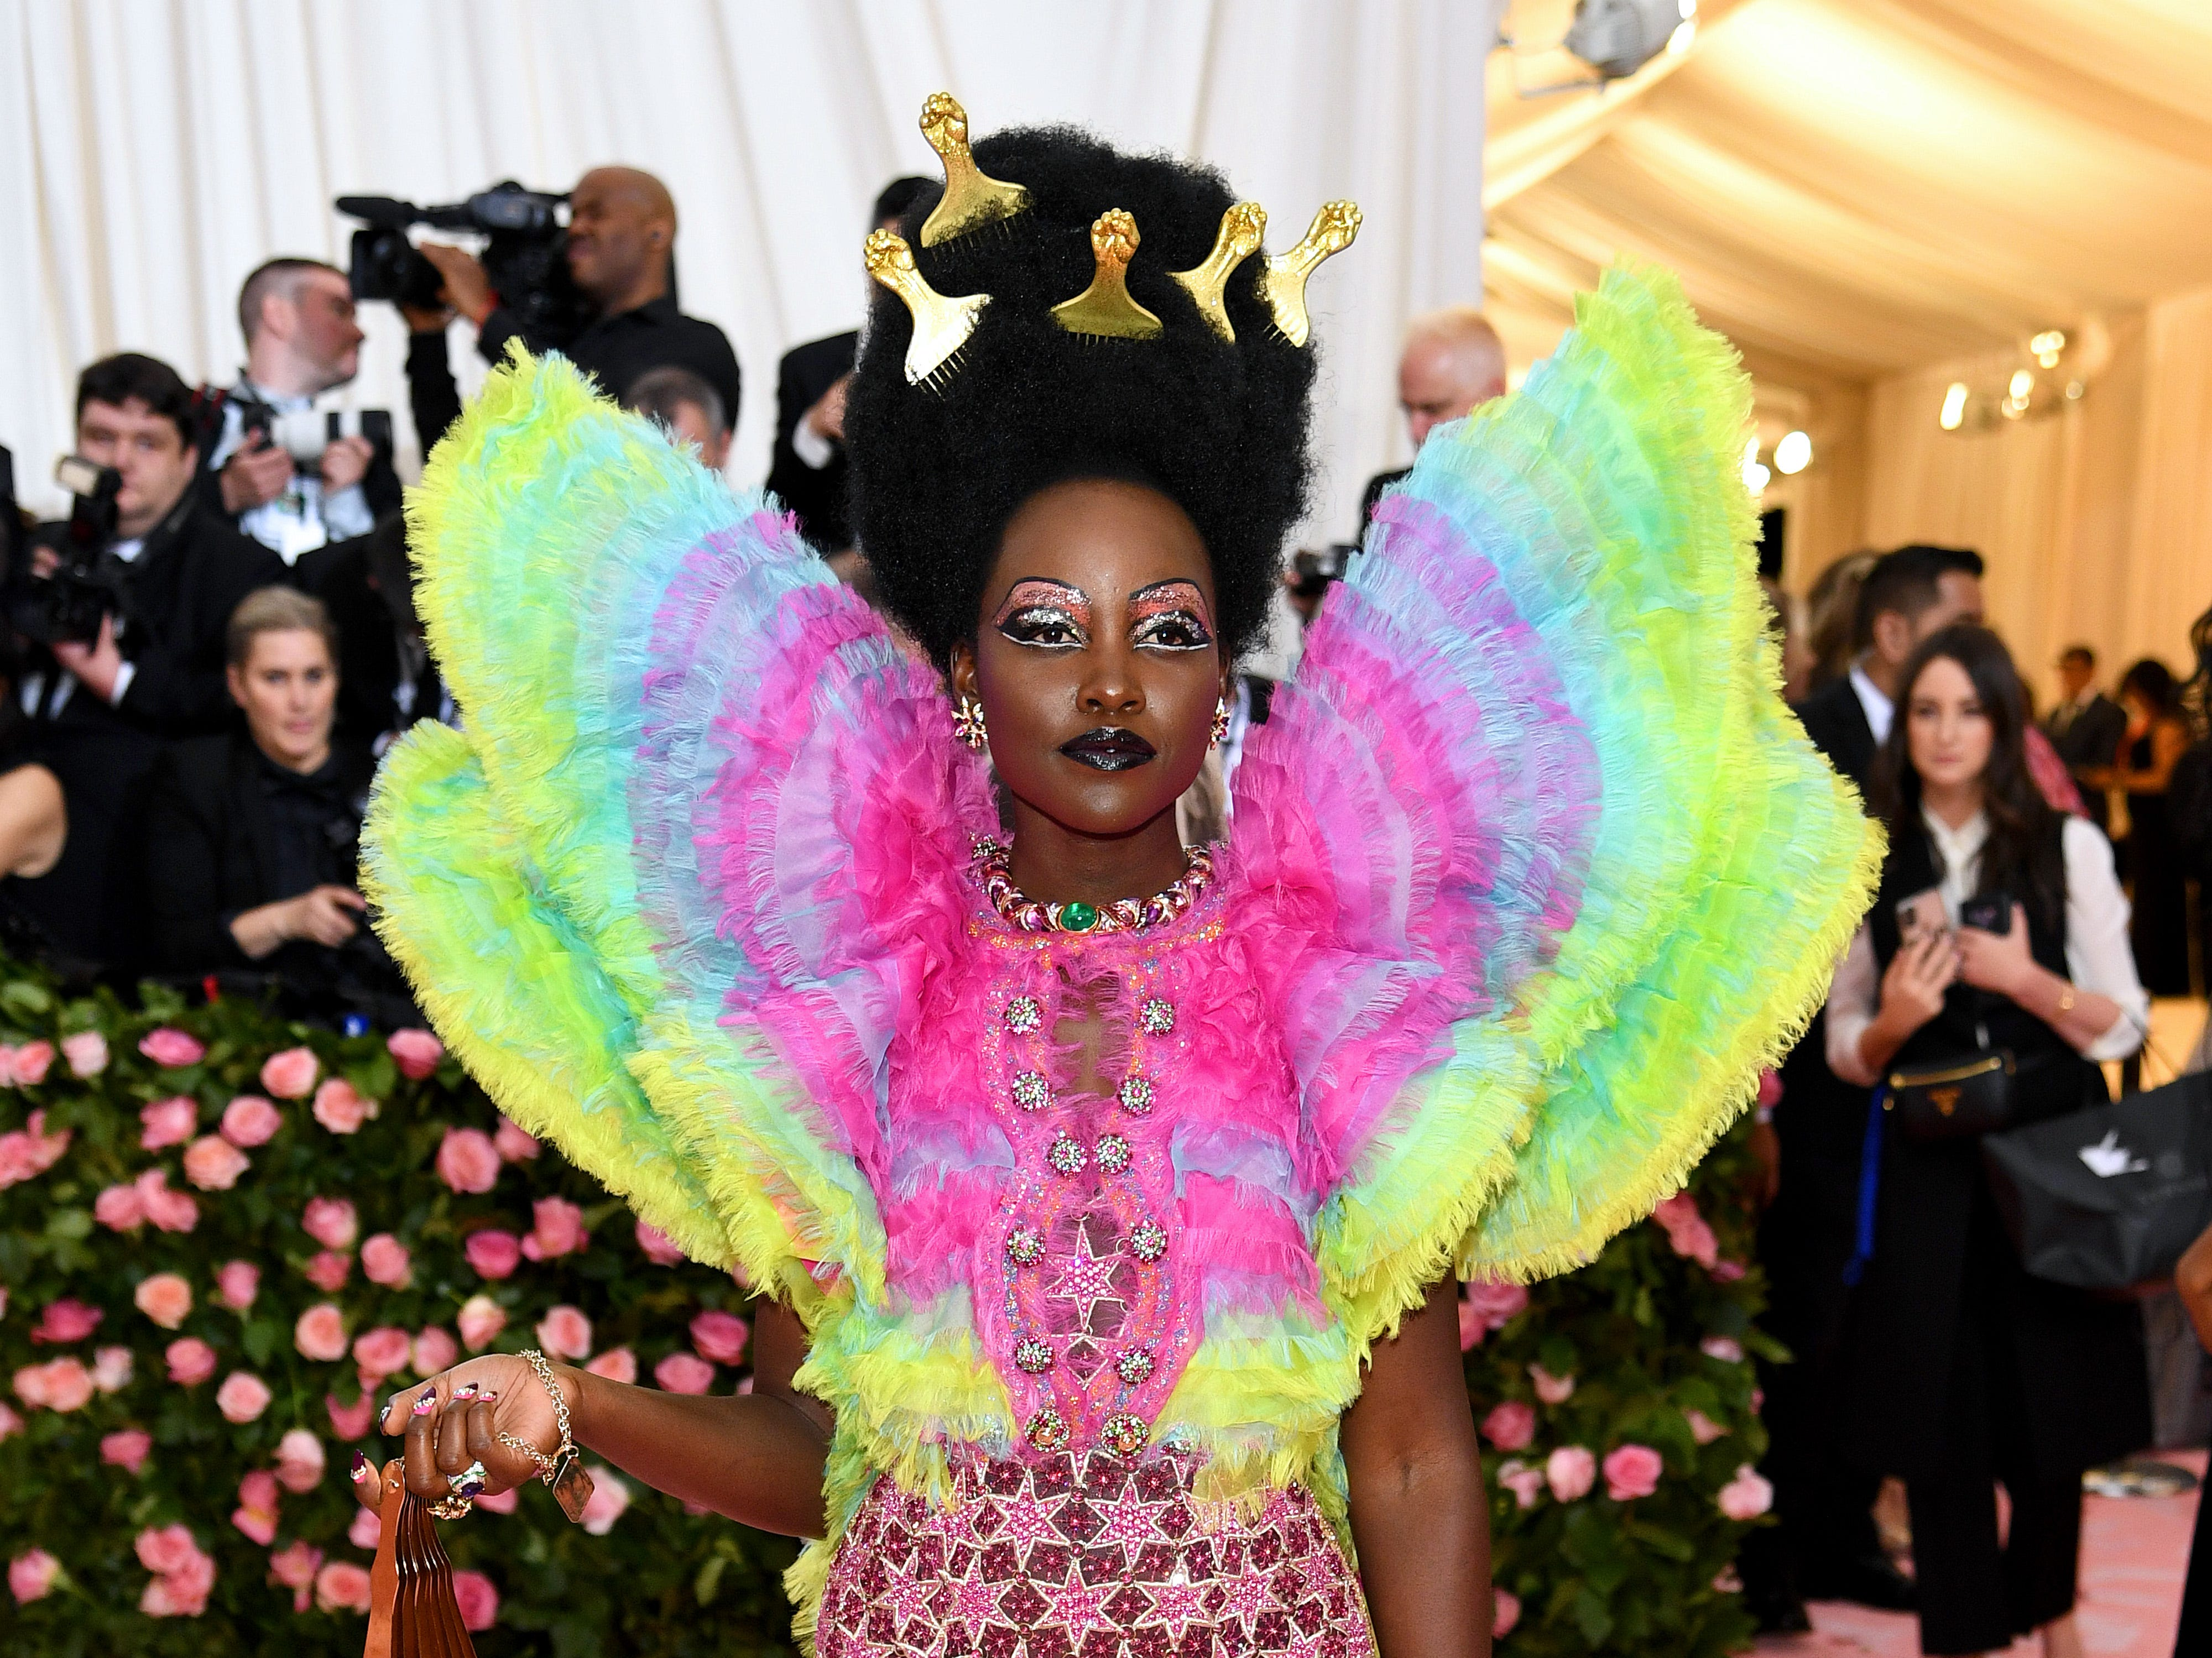 NEW YORK, NEW YORK - MAY 06: Lupita Nyong'o attends The 2019 Met Gala Celebrating Camp: Notes on Fashion at Metropolitan Museum of Art on May 06, 2019 in New York City. (Photo by Dimitrios Kambouris/Getty Images for The Met Museum/Vogue) ORG XMIT: 775333959 ORIG FILE ID: 1147432991